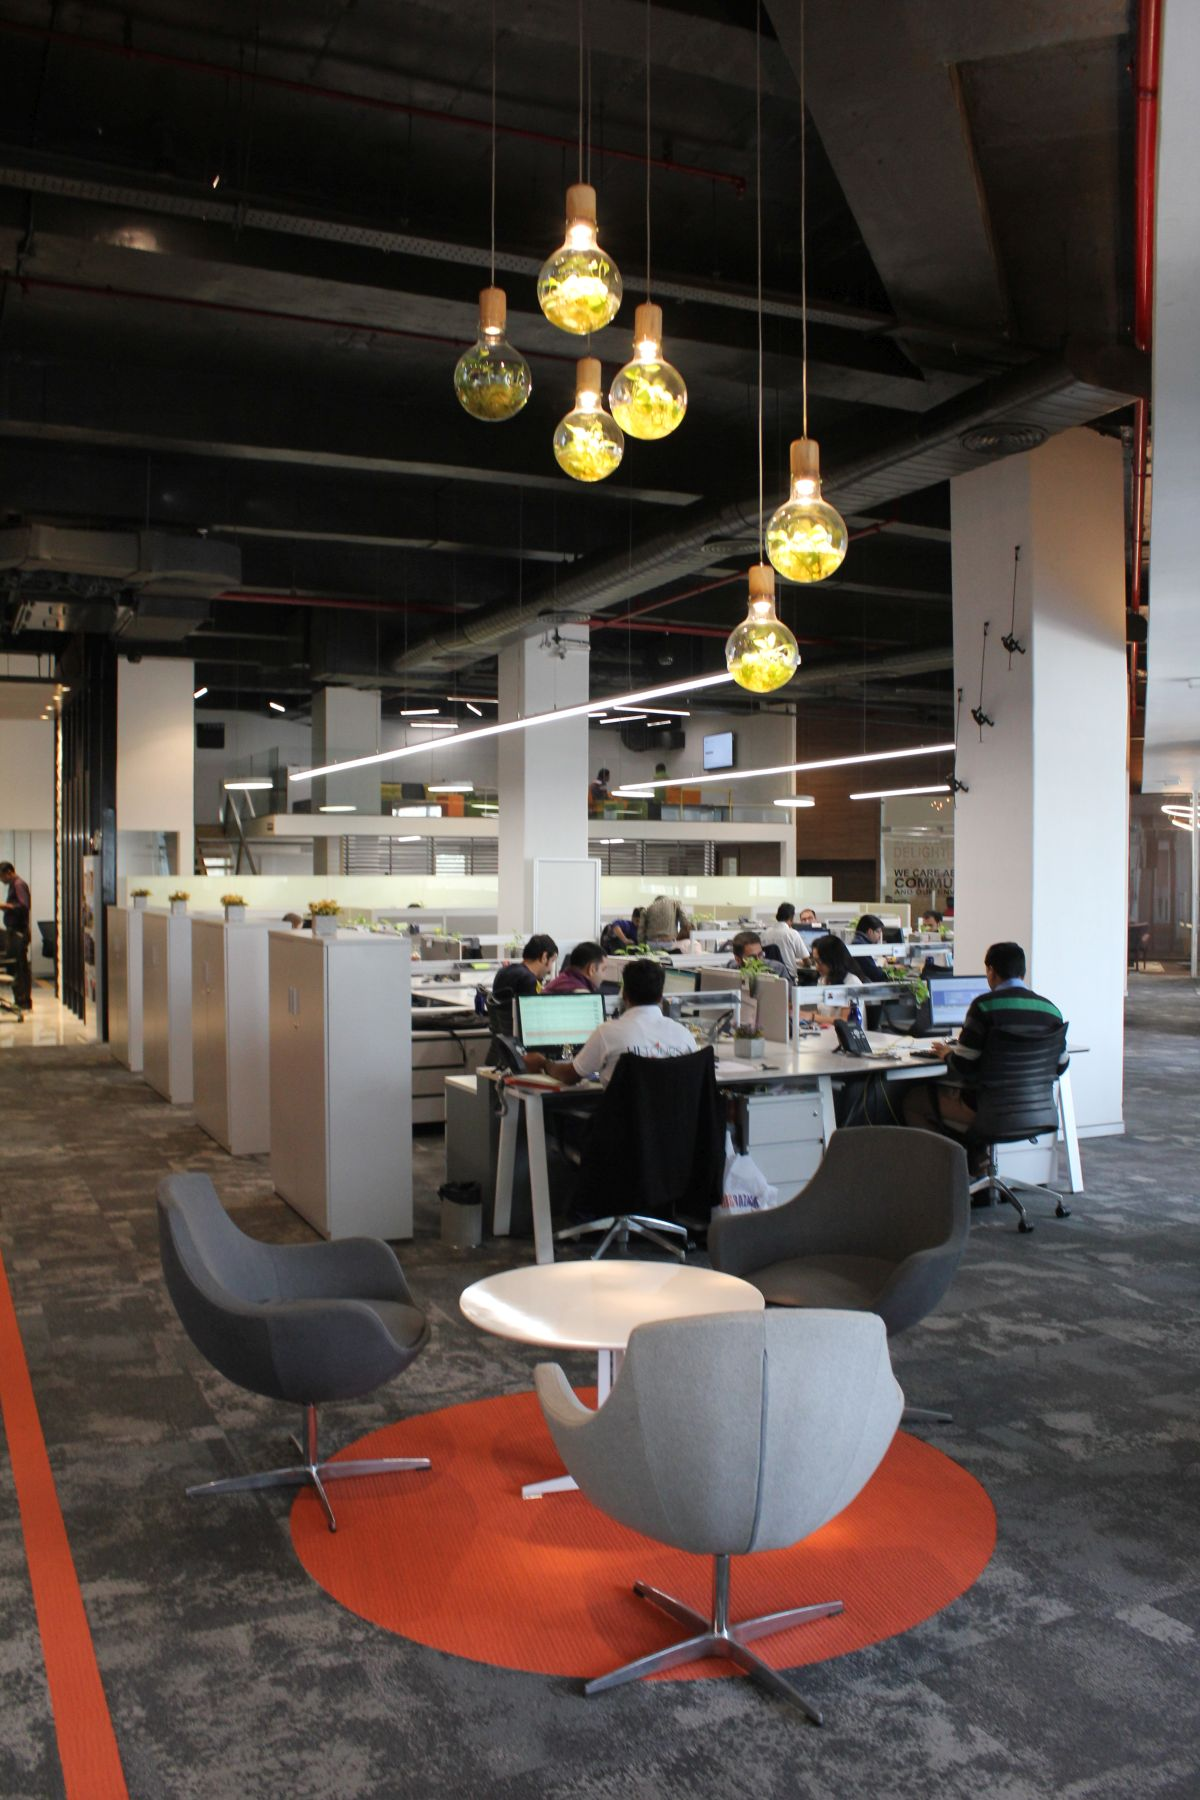 Contemporary Corporate Office, at Gurugram, Haryana, by Parag Singal Architects 10